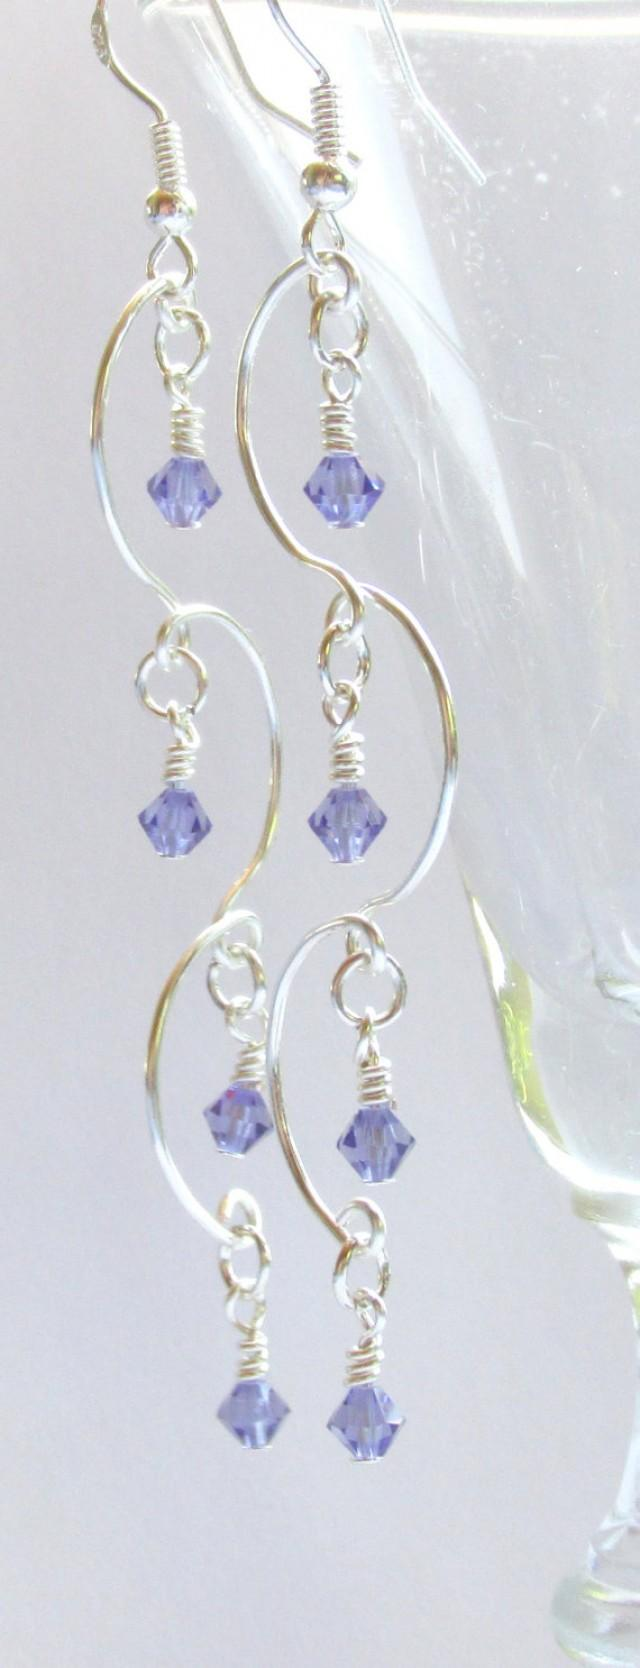 Chandelier Earrings, Tanzanite Beaded Earrings, Purple & Silver Earrings,  Prom 2015, Bridal Jewelry, Bridesmaid Gift, Birthstone Jewelry #2337652   Weddbook